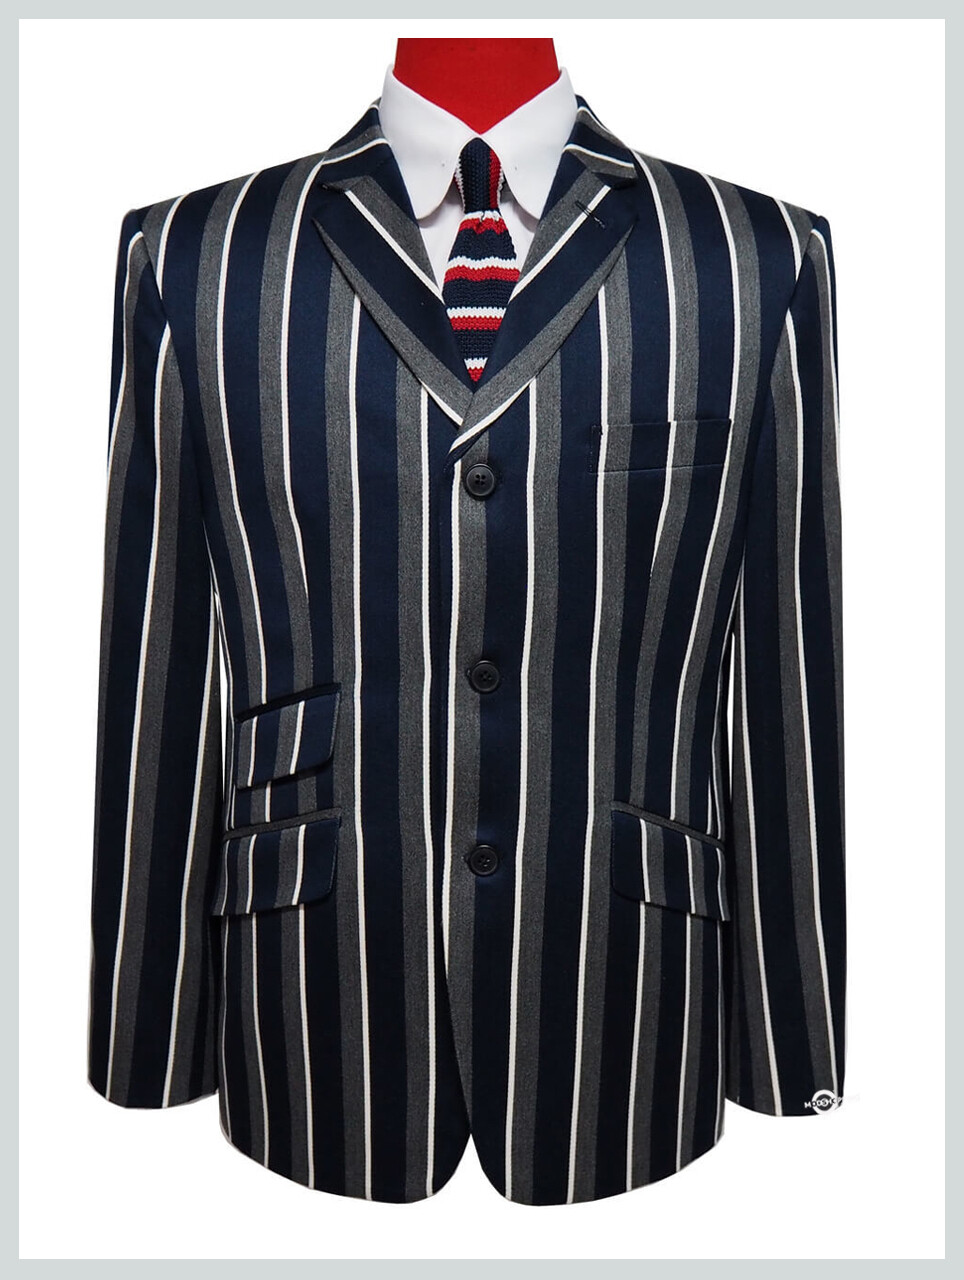 Boating Blazer | 60s Mod Navy Blue Stripe Retro Boating Blazer For Men